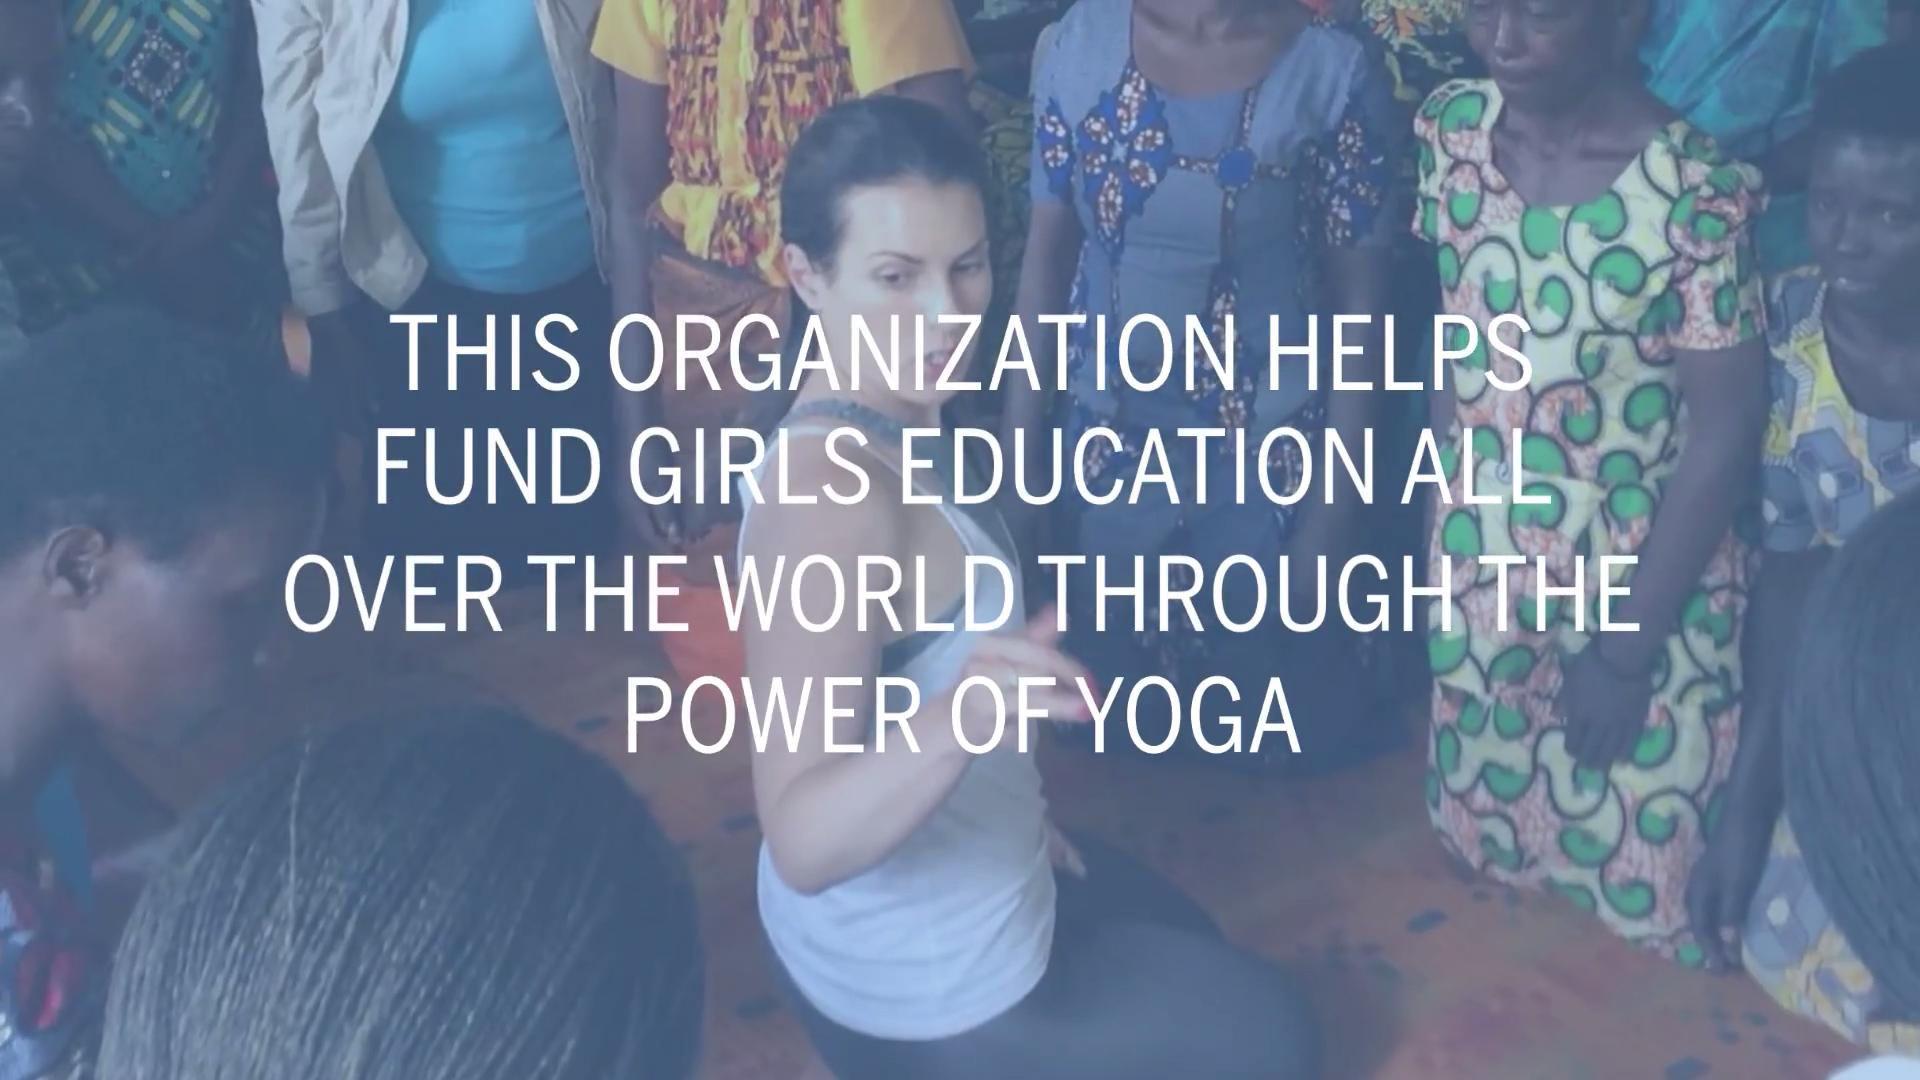 This Organization Helps Fund Girls Education All Over the World Through the Power of Yoga